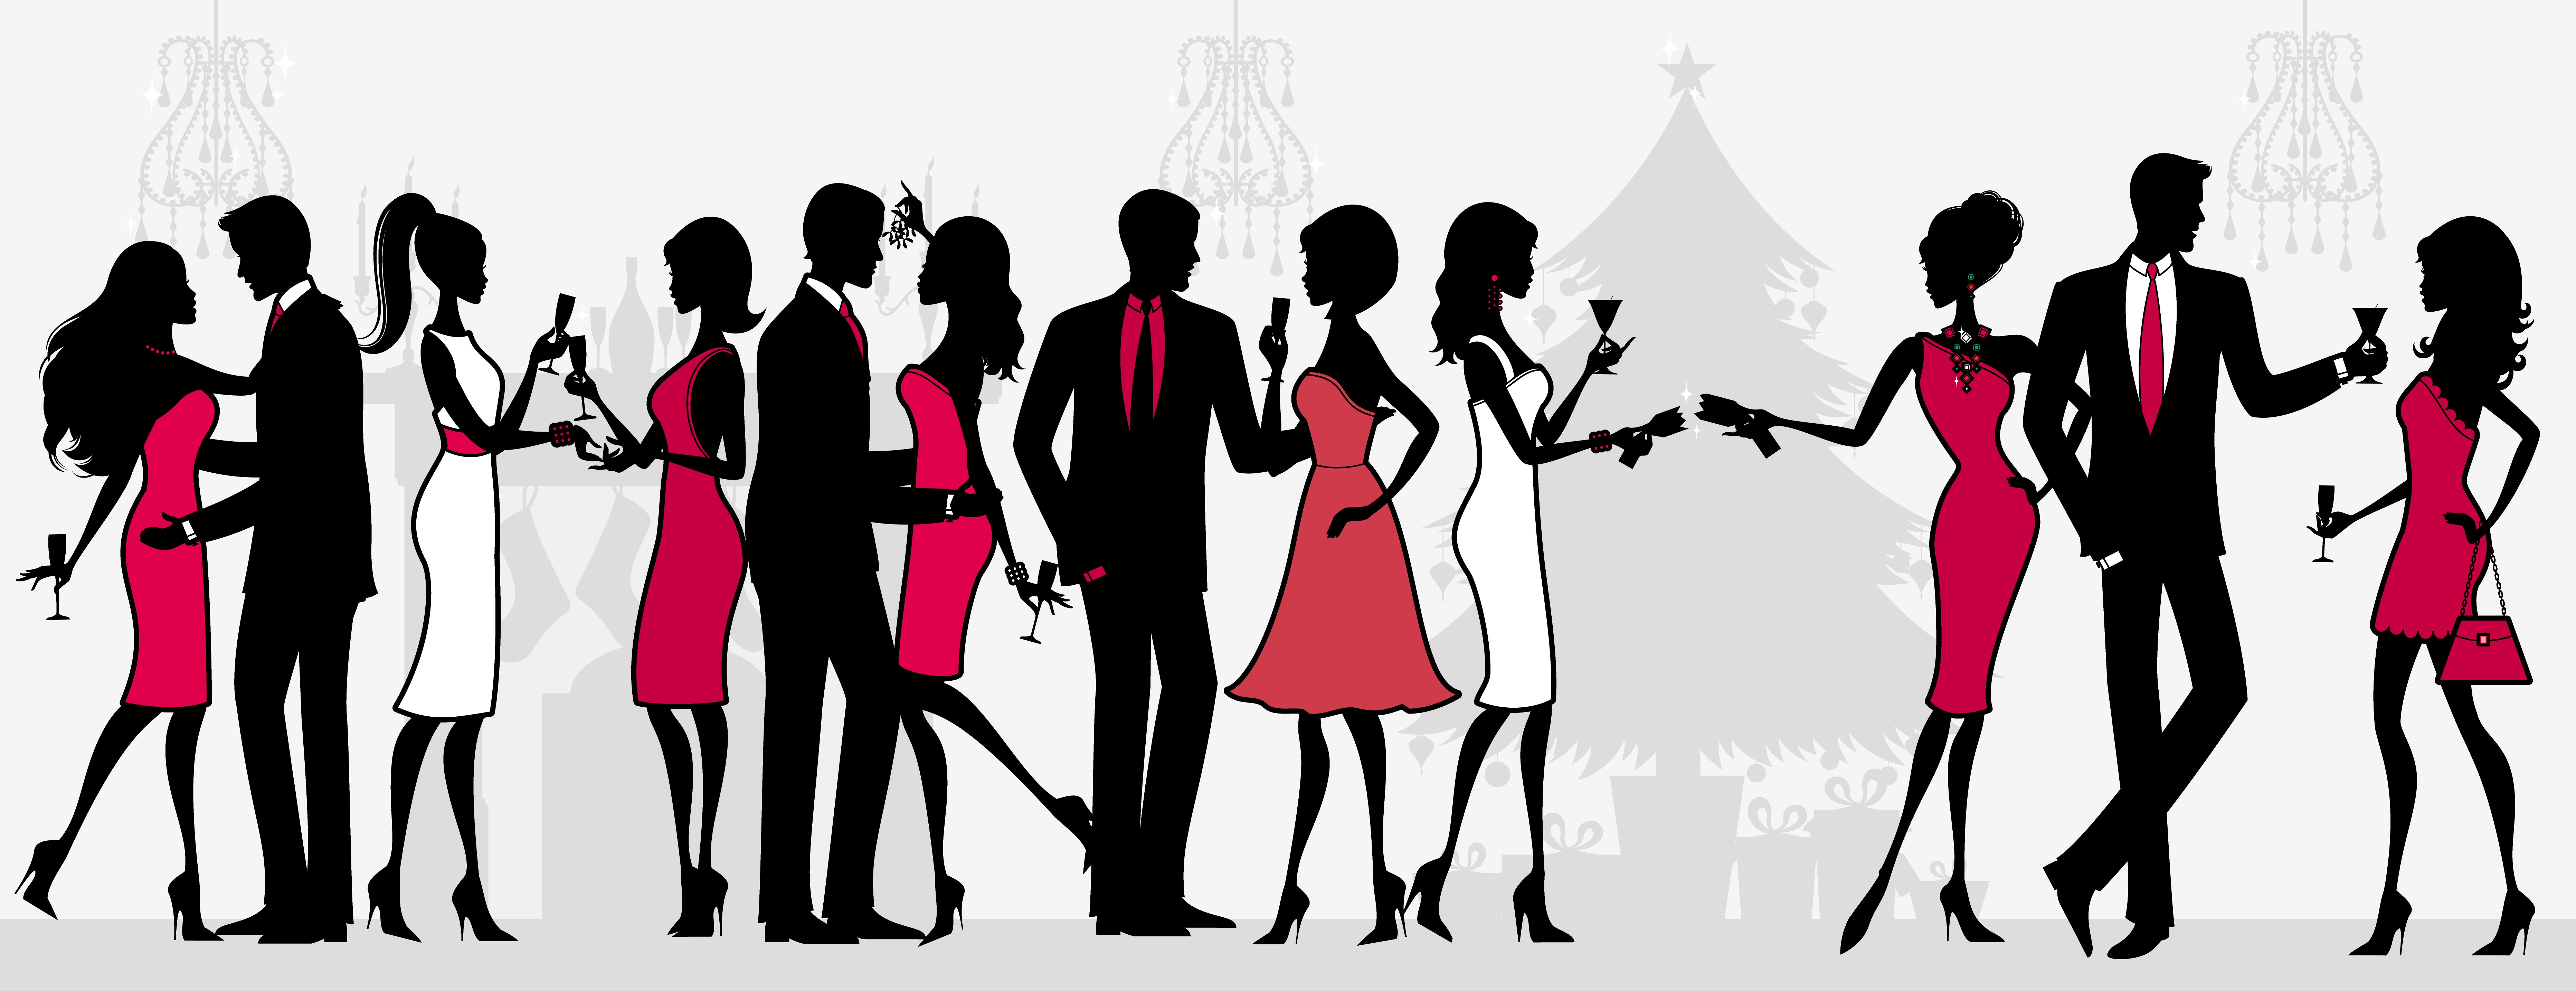 Free Social Gathering Cliparts, Download Free Clip Art, Free Clip.